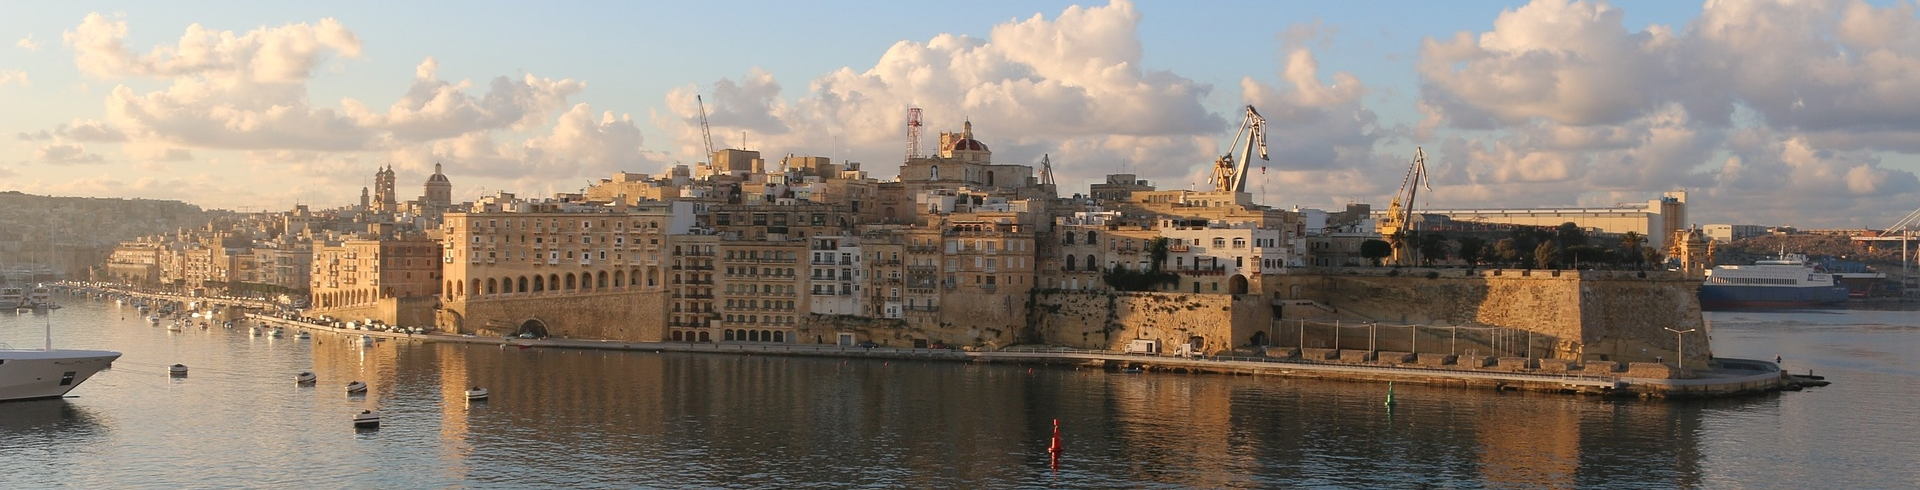 Two new Luxury Hotels on Malta